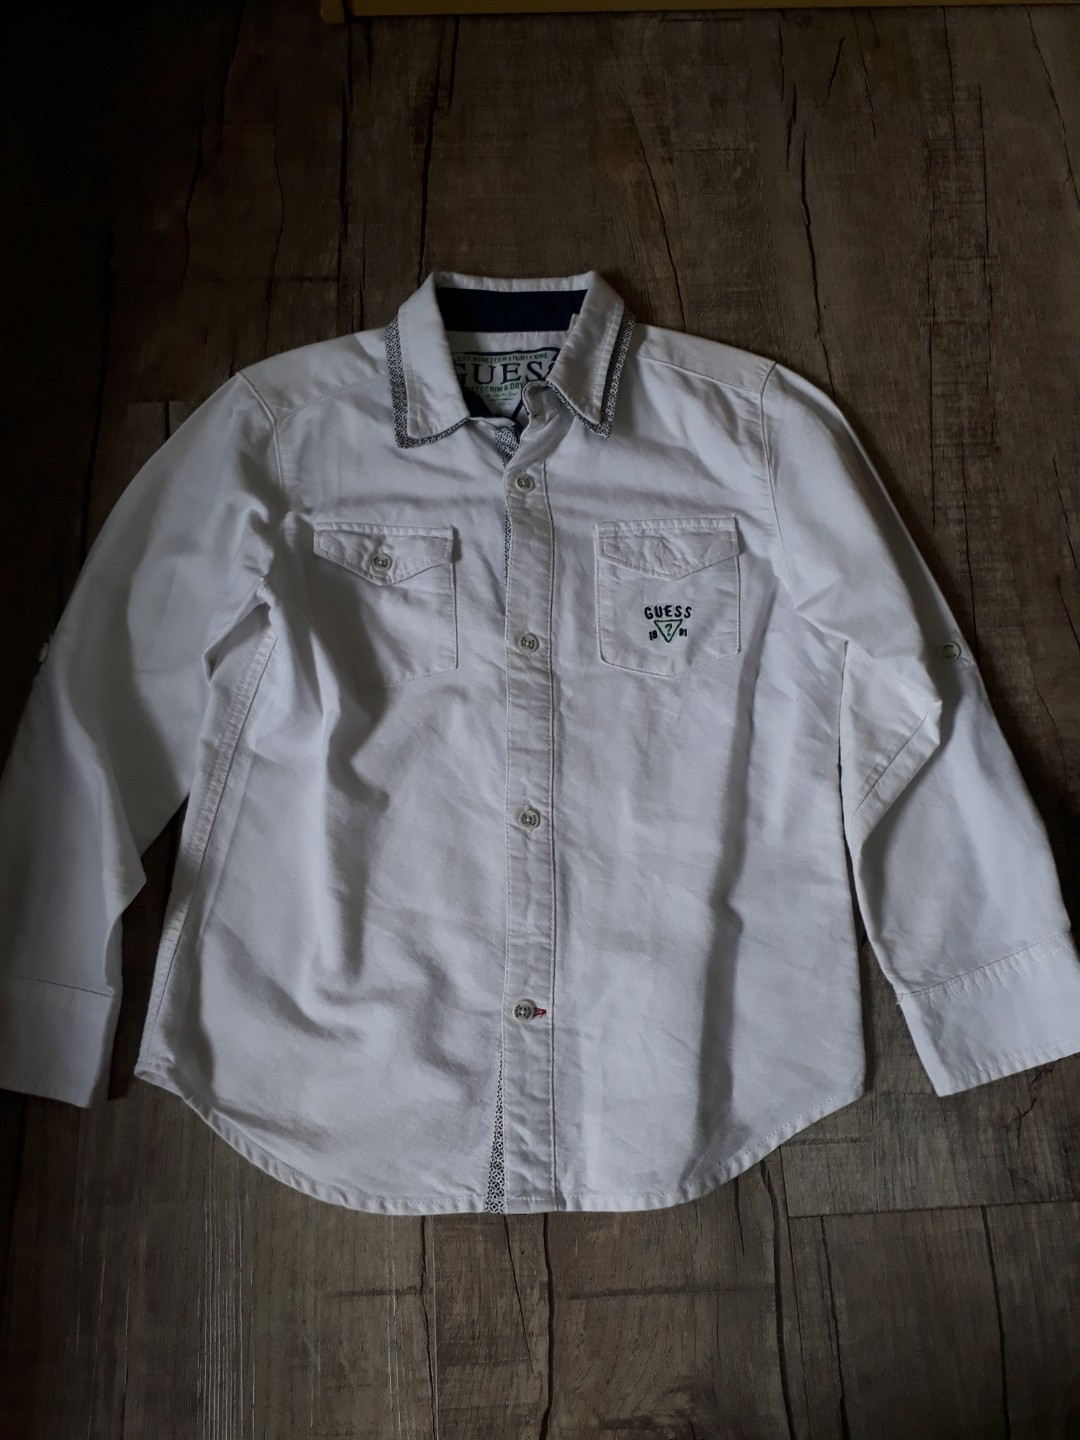 91846500d00fc7 Home · Babies & Kids · Boys' Apparel · 8 to 12 Years. photo photo photo